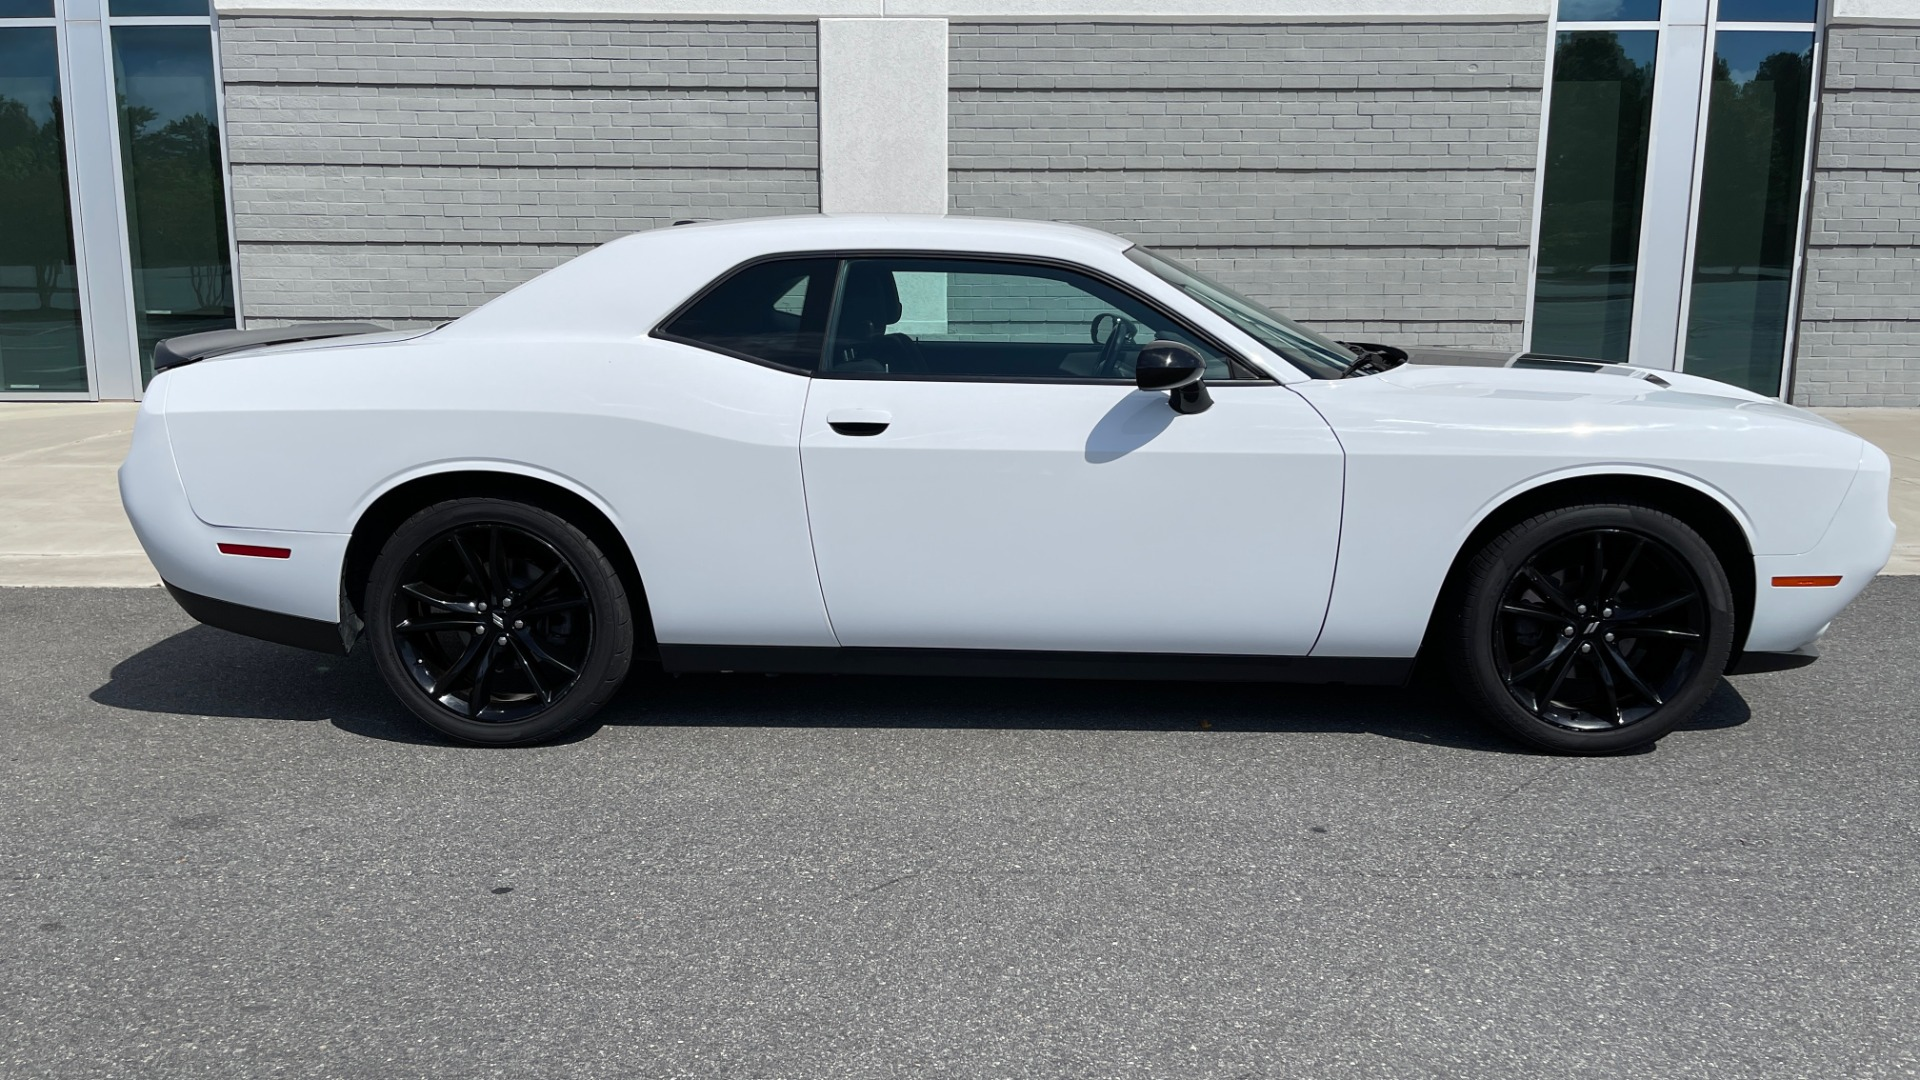 Used 2018 Dodge CHALLENGER SXT COUPE / BLACKTOP PKG / 3.6L V6 / 8-SPD AUTO / REARVIEW for sale $31,995 at Formula Imports in Charlotte NC 28227 7